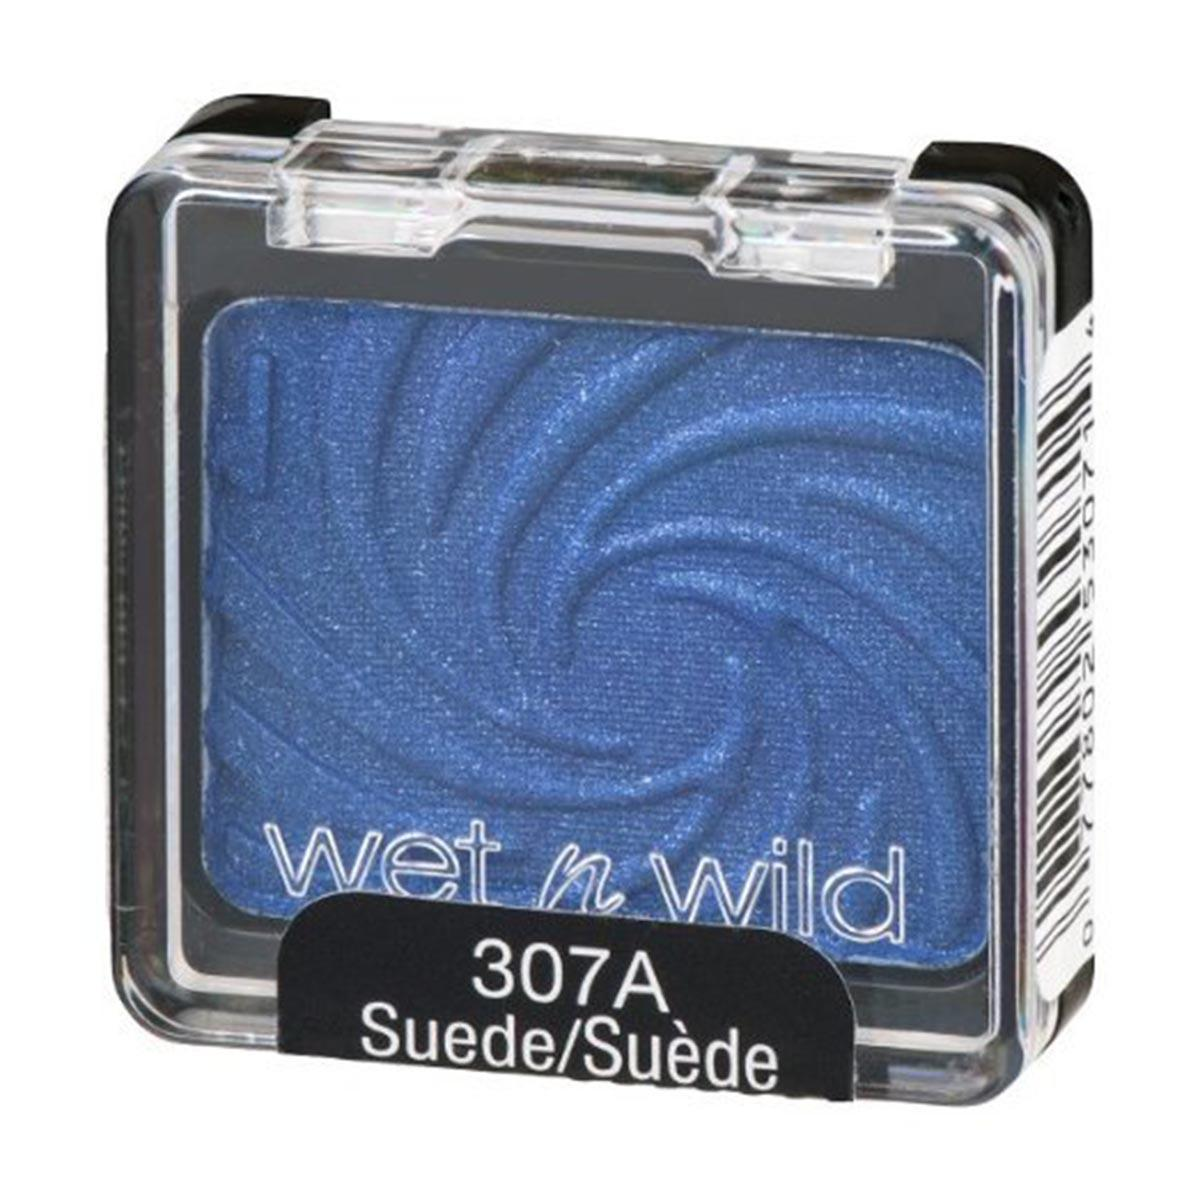 Wet n wild Eyeshadow 307A Suede